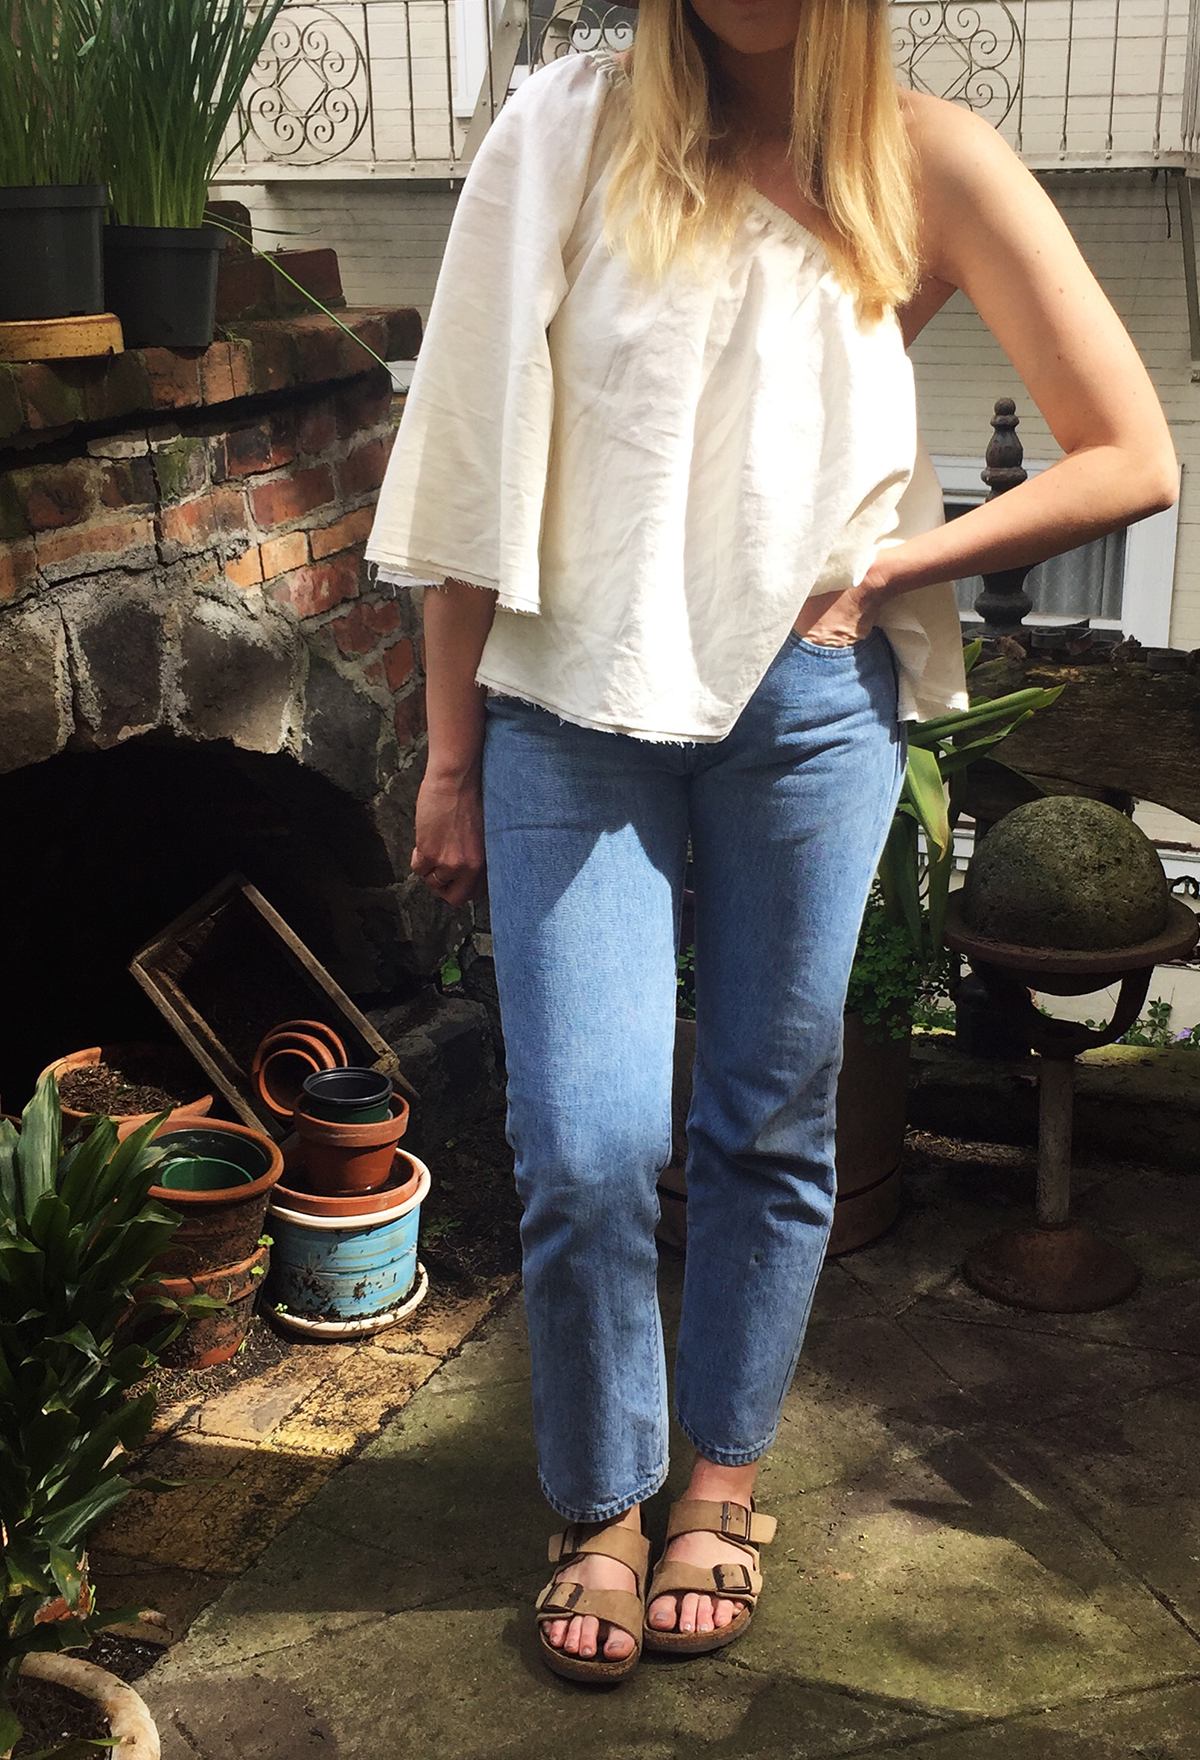 Levis, jeans, denim, vintage, how to, summer, spring, casual, every day, style, women, fashion, inspiration, style tips, simple, look good, one shoulder, white, off the shoulder, Birkenstocks, hat, three ways to wear, how to